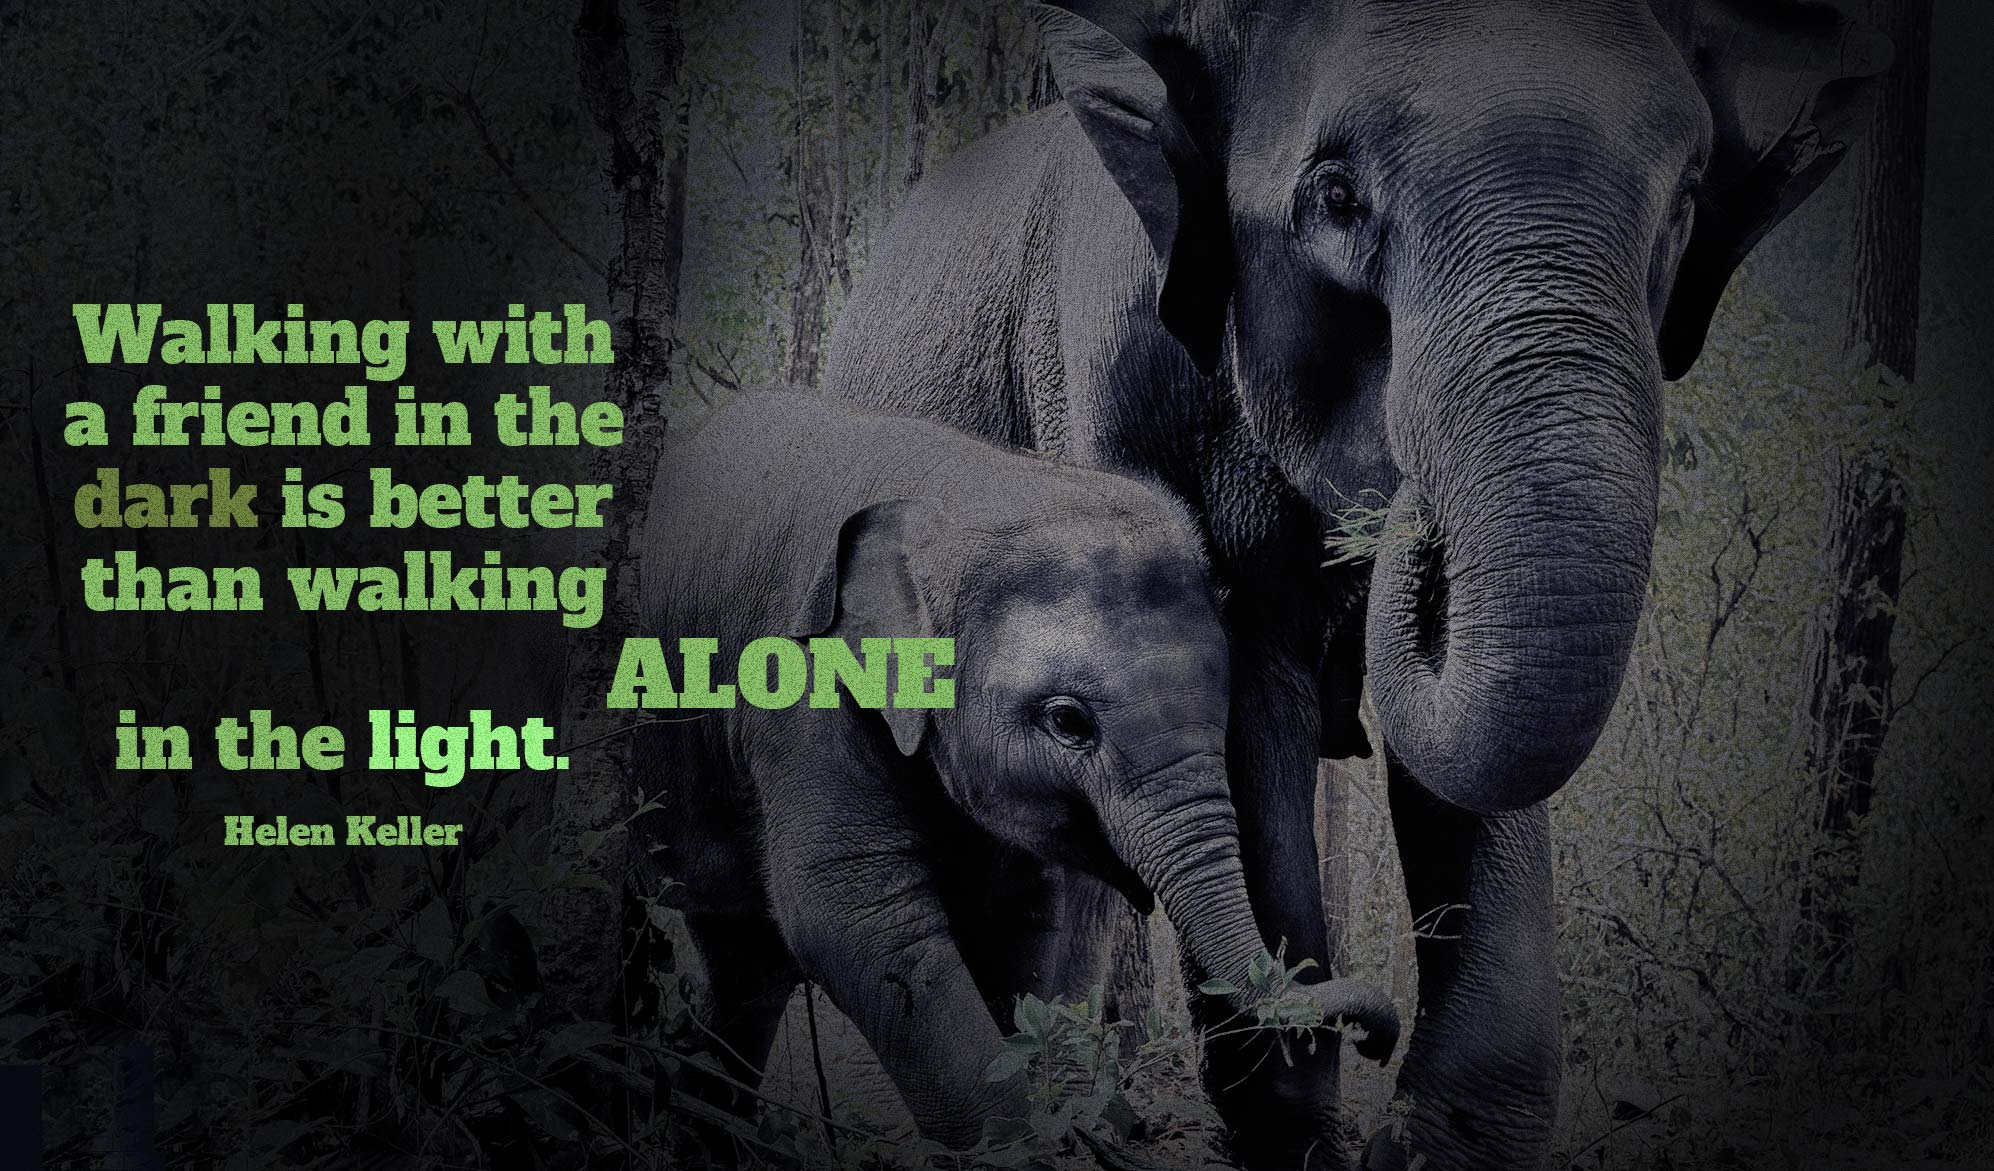 daily inspirational quote image: a mom and a baby elephant walking in a dark forest